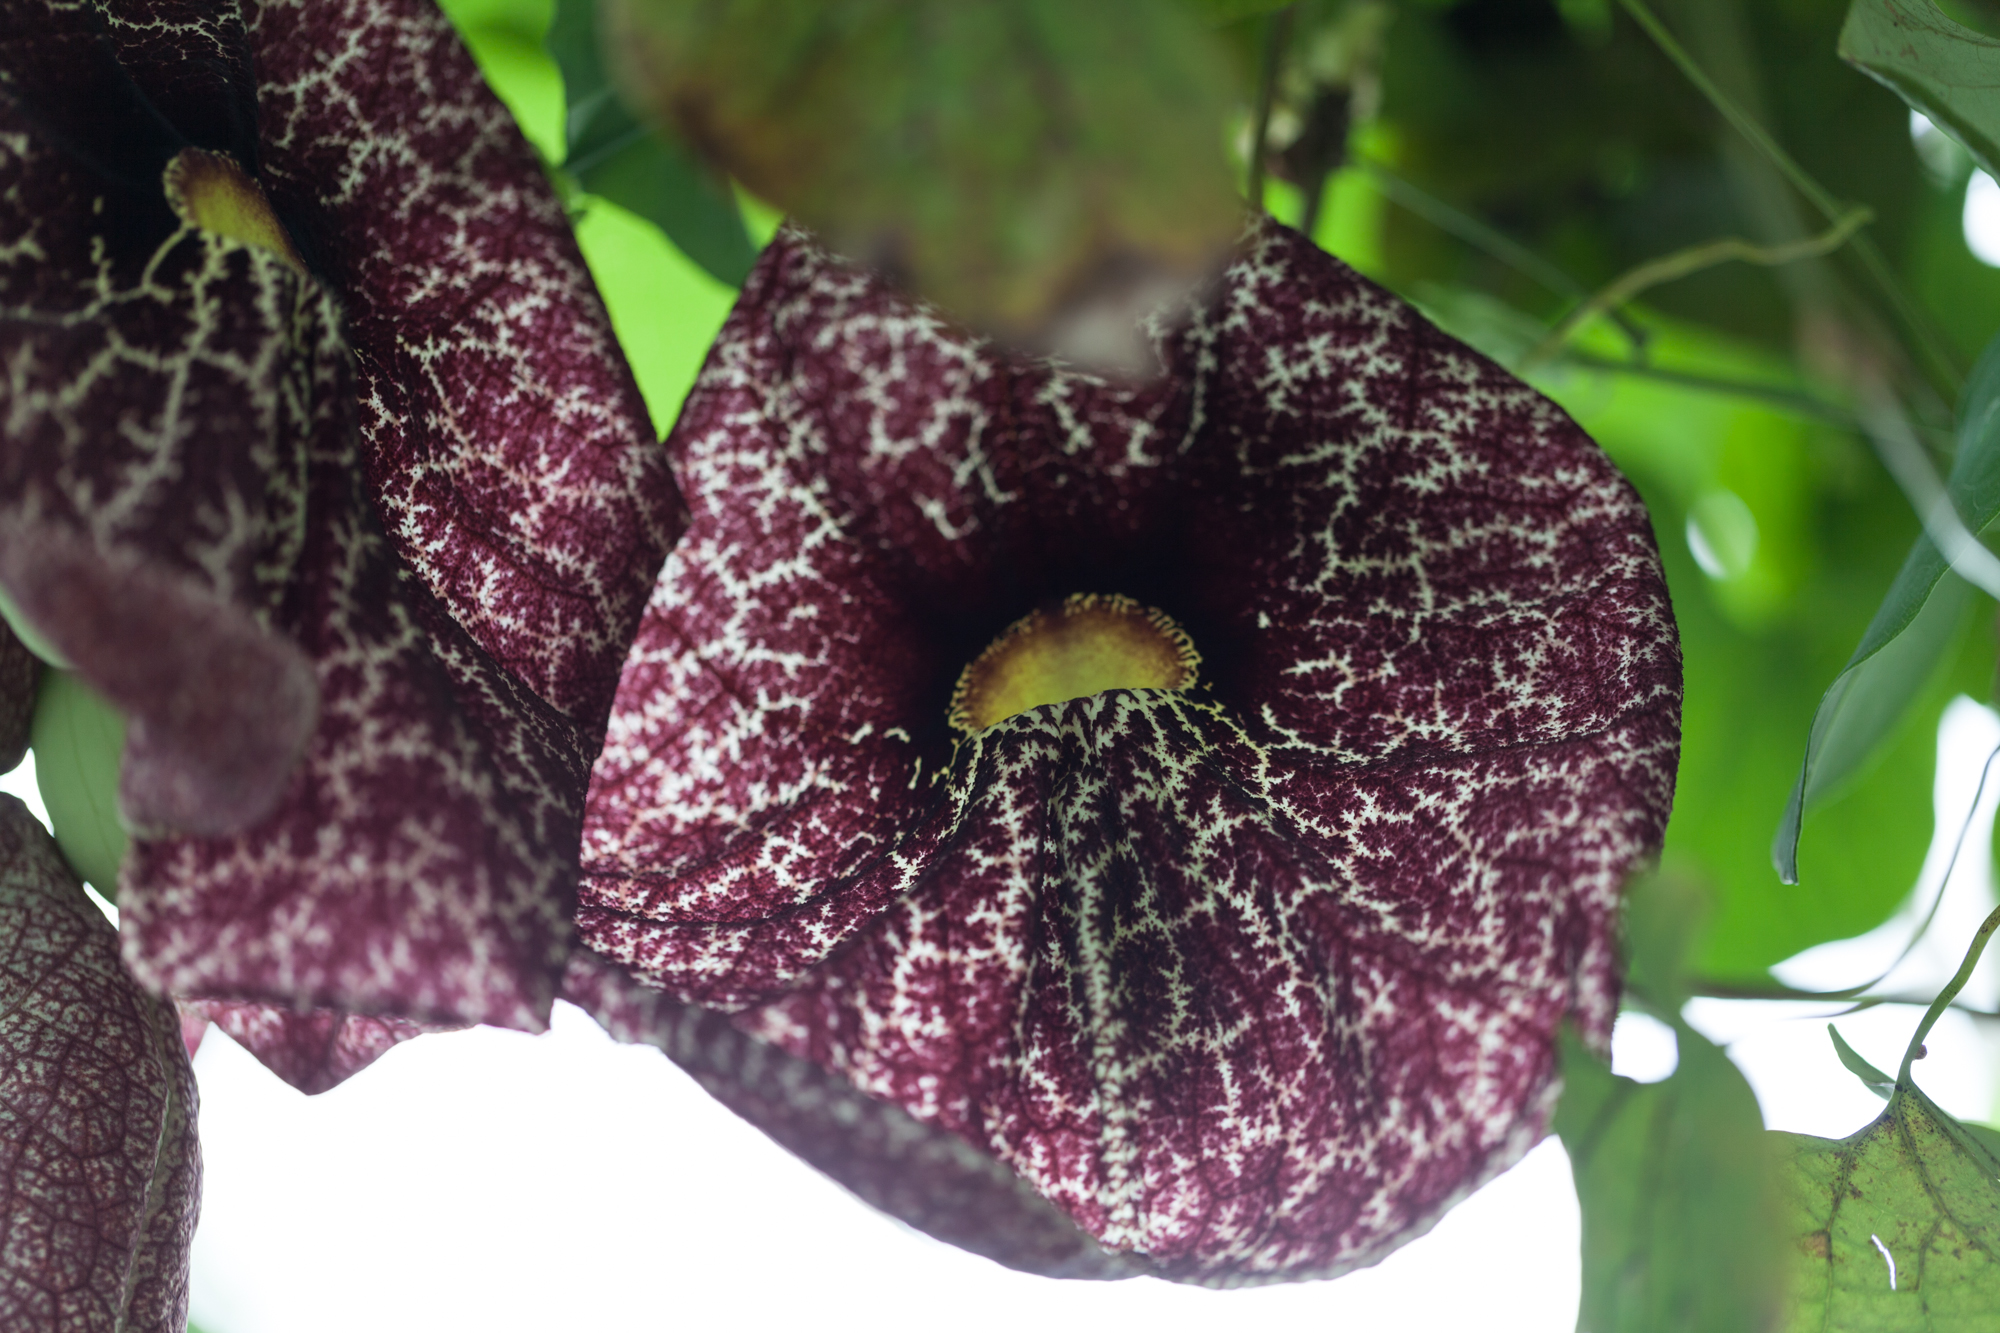 Pelican flower ( Aristolochia grandiflora ) is always a crowd-pleaser.